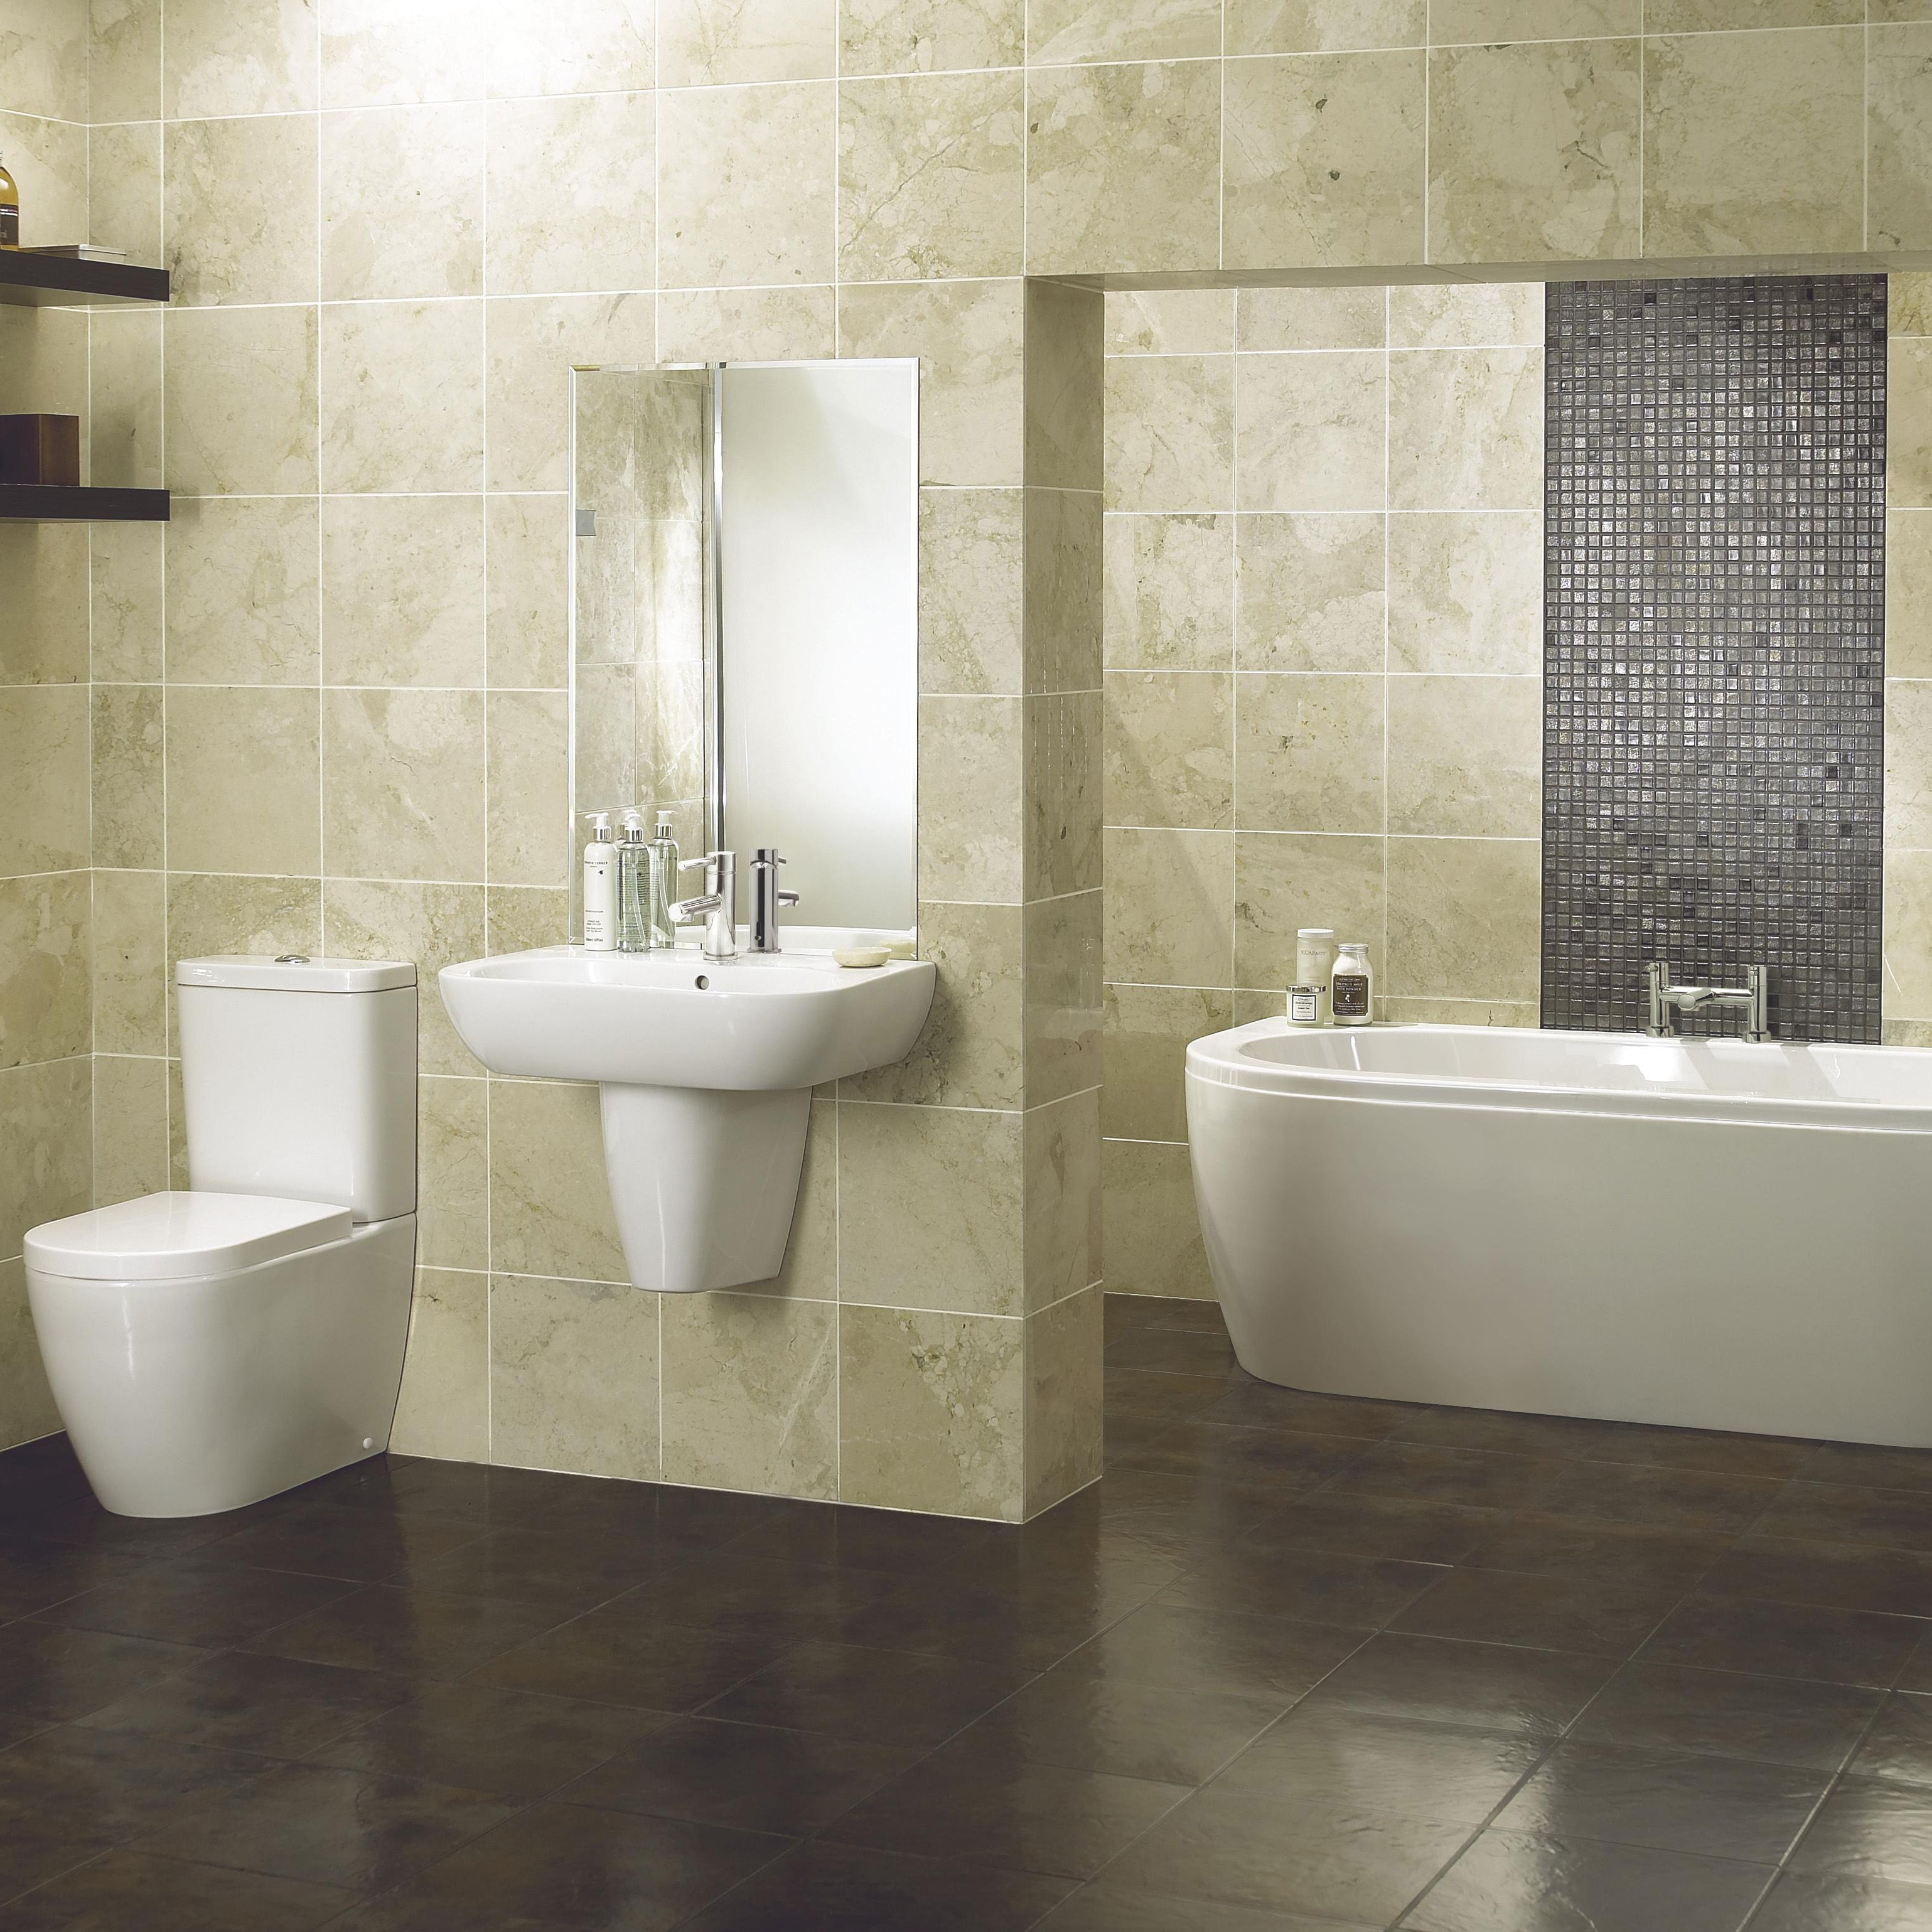 B and q cooke and lewis bathrooms - B And Q Cooke And Lewis Bathrooms